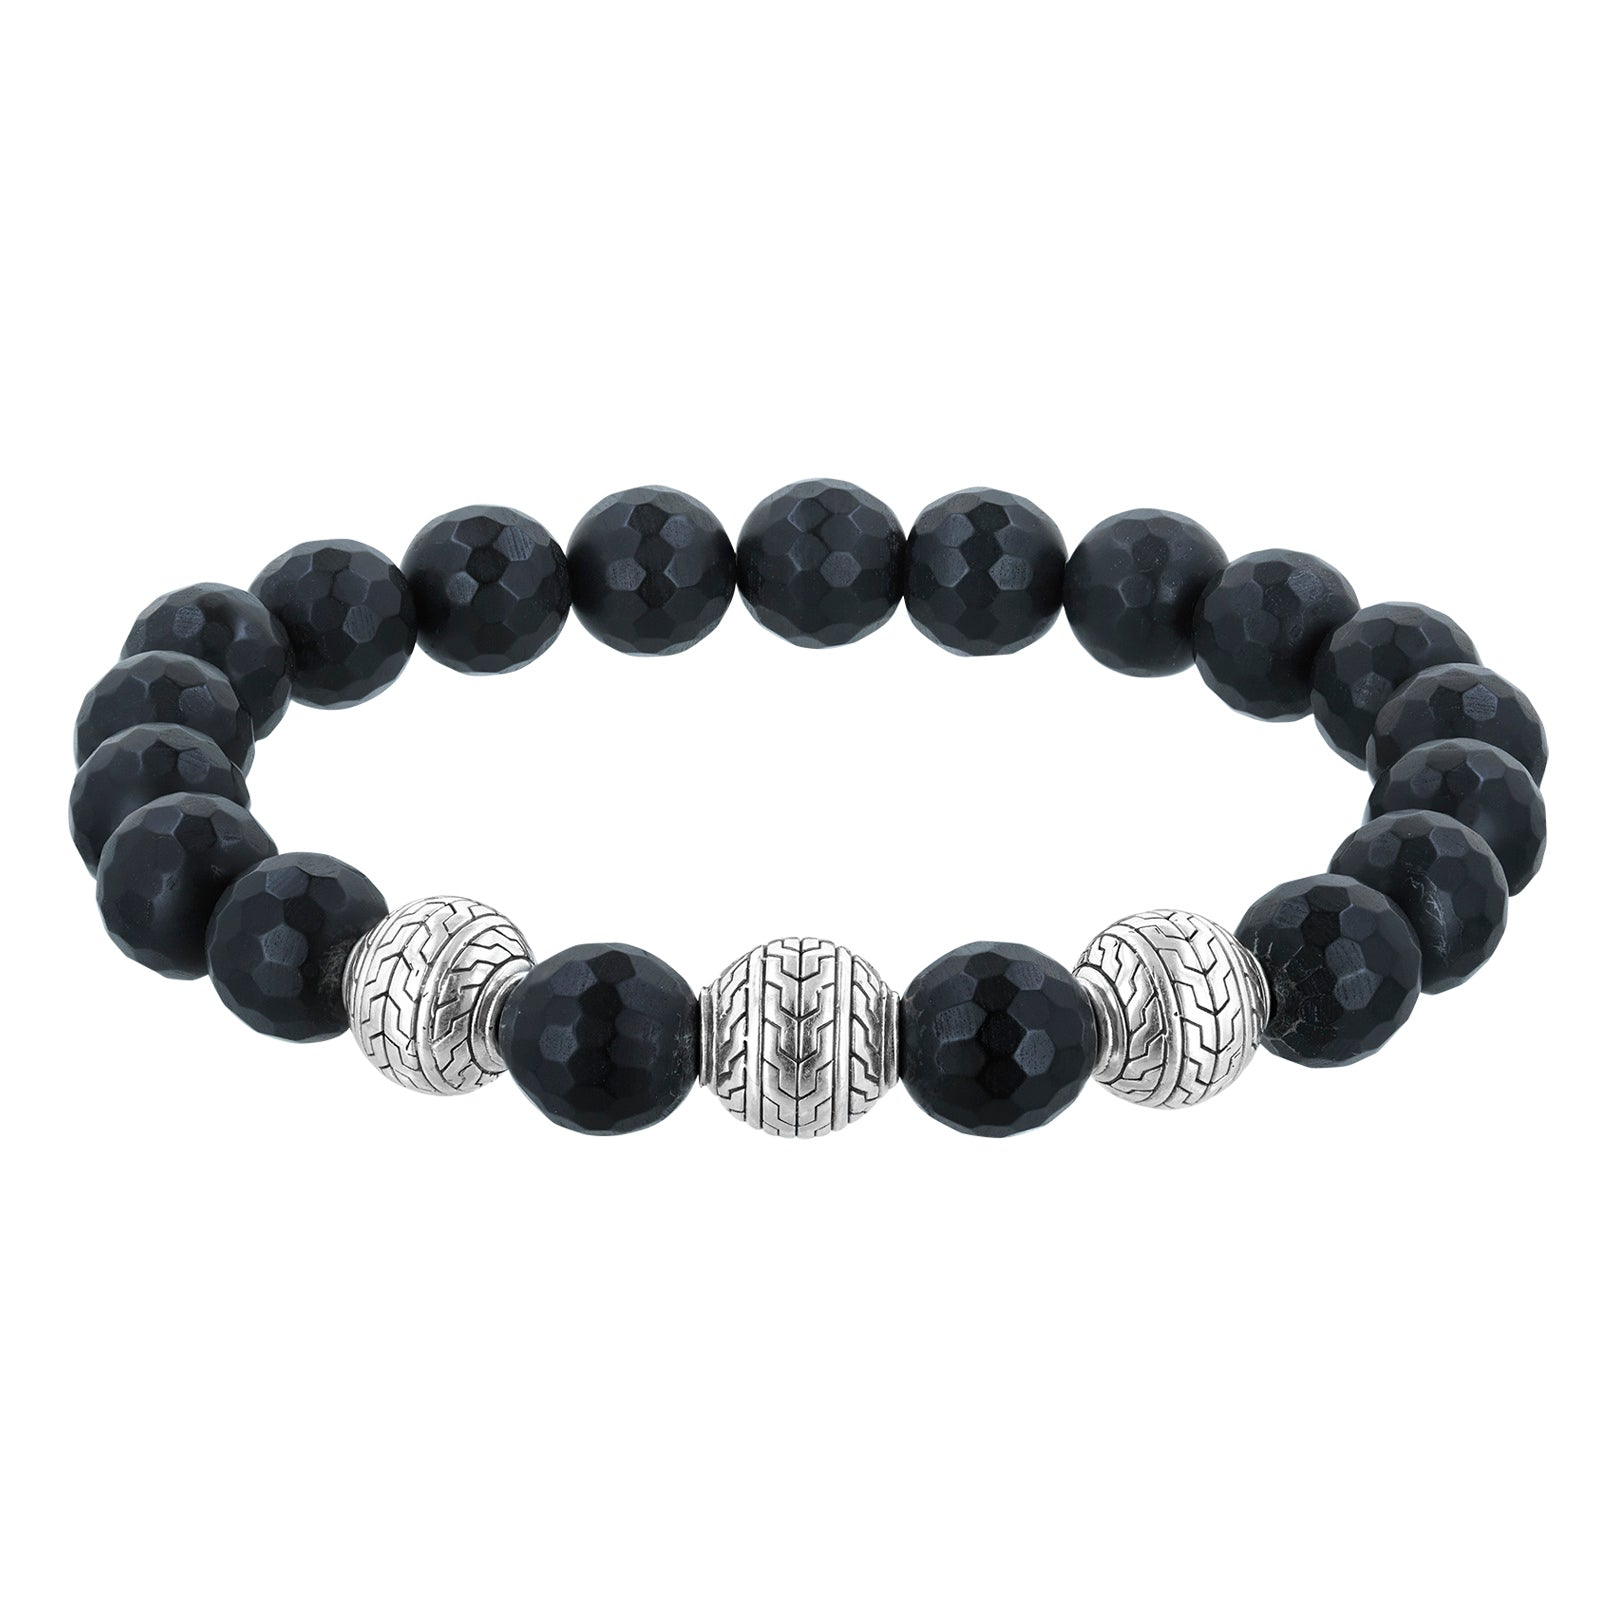 Faceted Frosted Onyx Beaded Bracelet